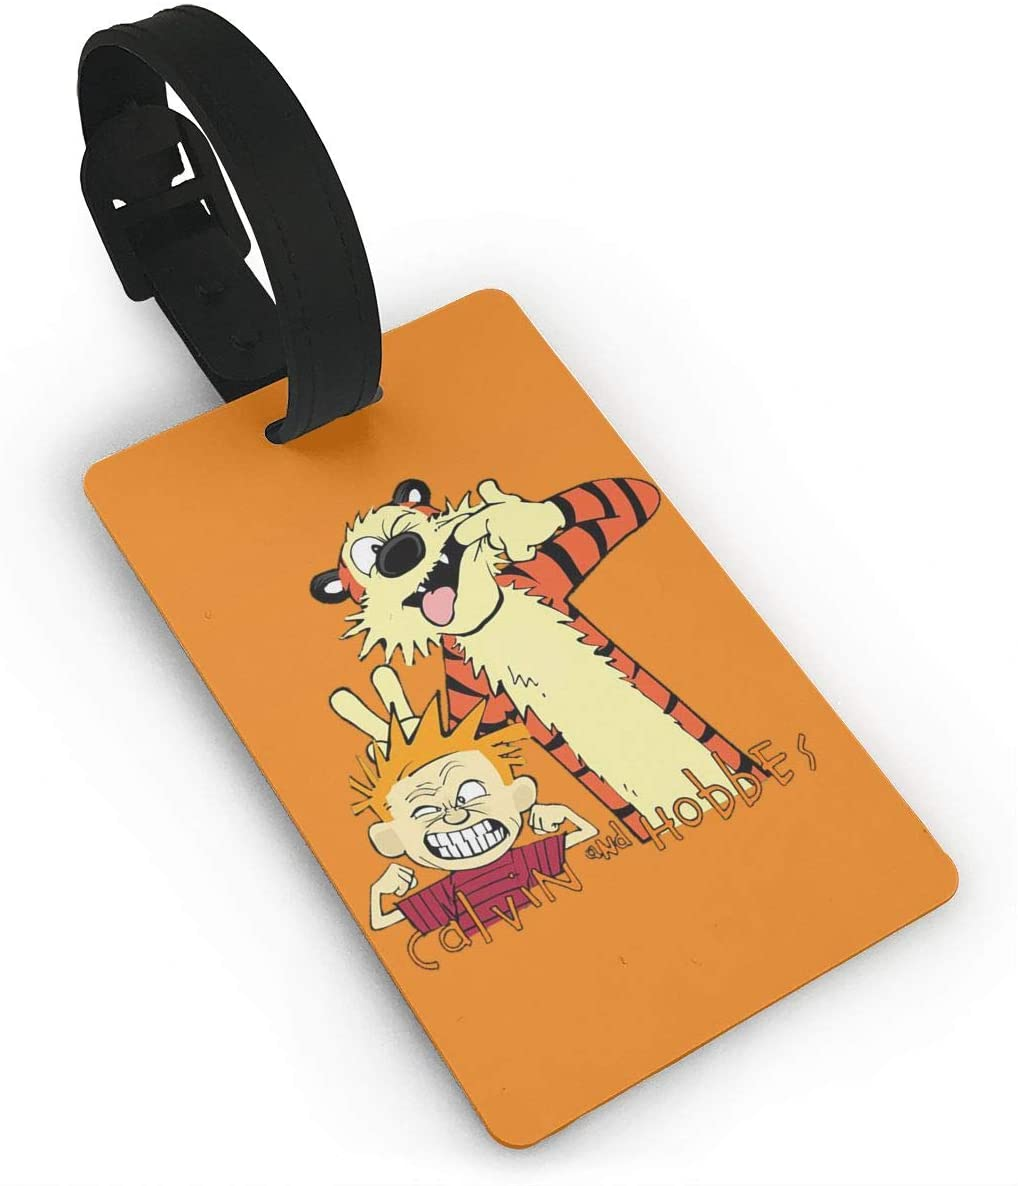 Pooizsdzzz Calvin and Hobbes Luggage Tags is PVC Material, Durable Very Suitable for Men and Women in Luggage